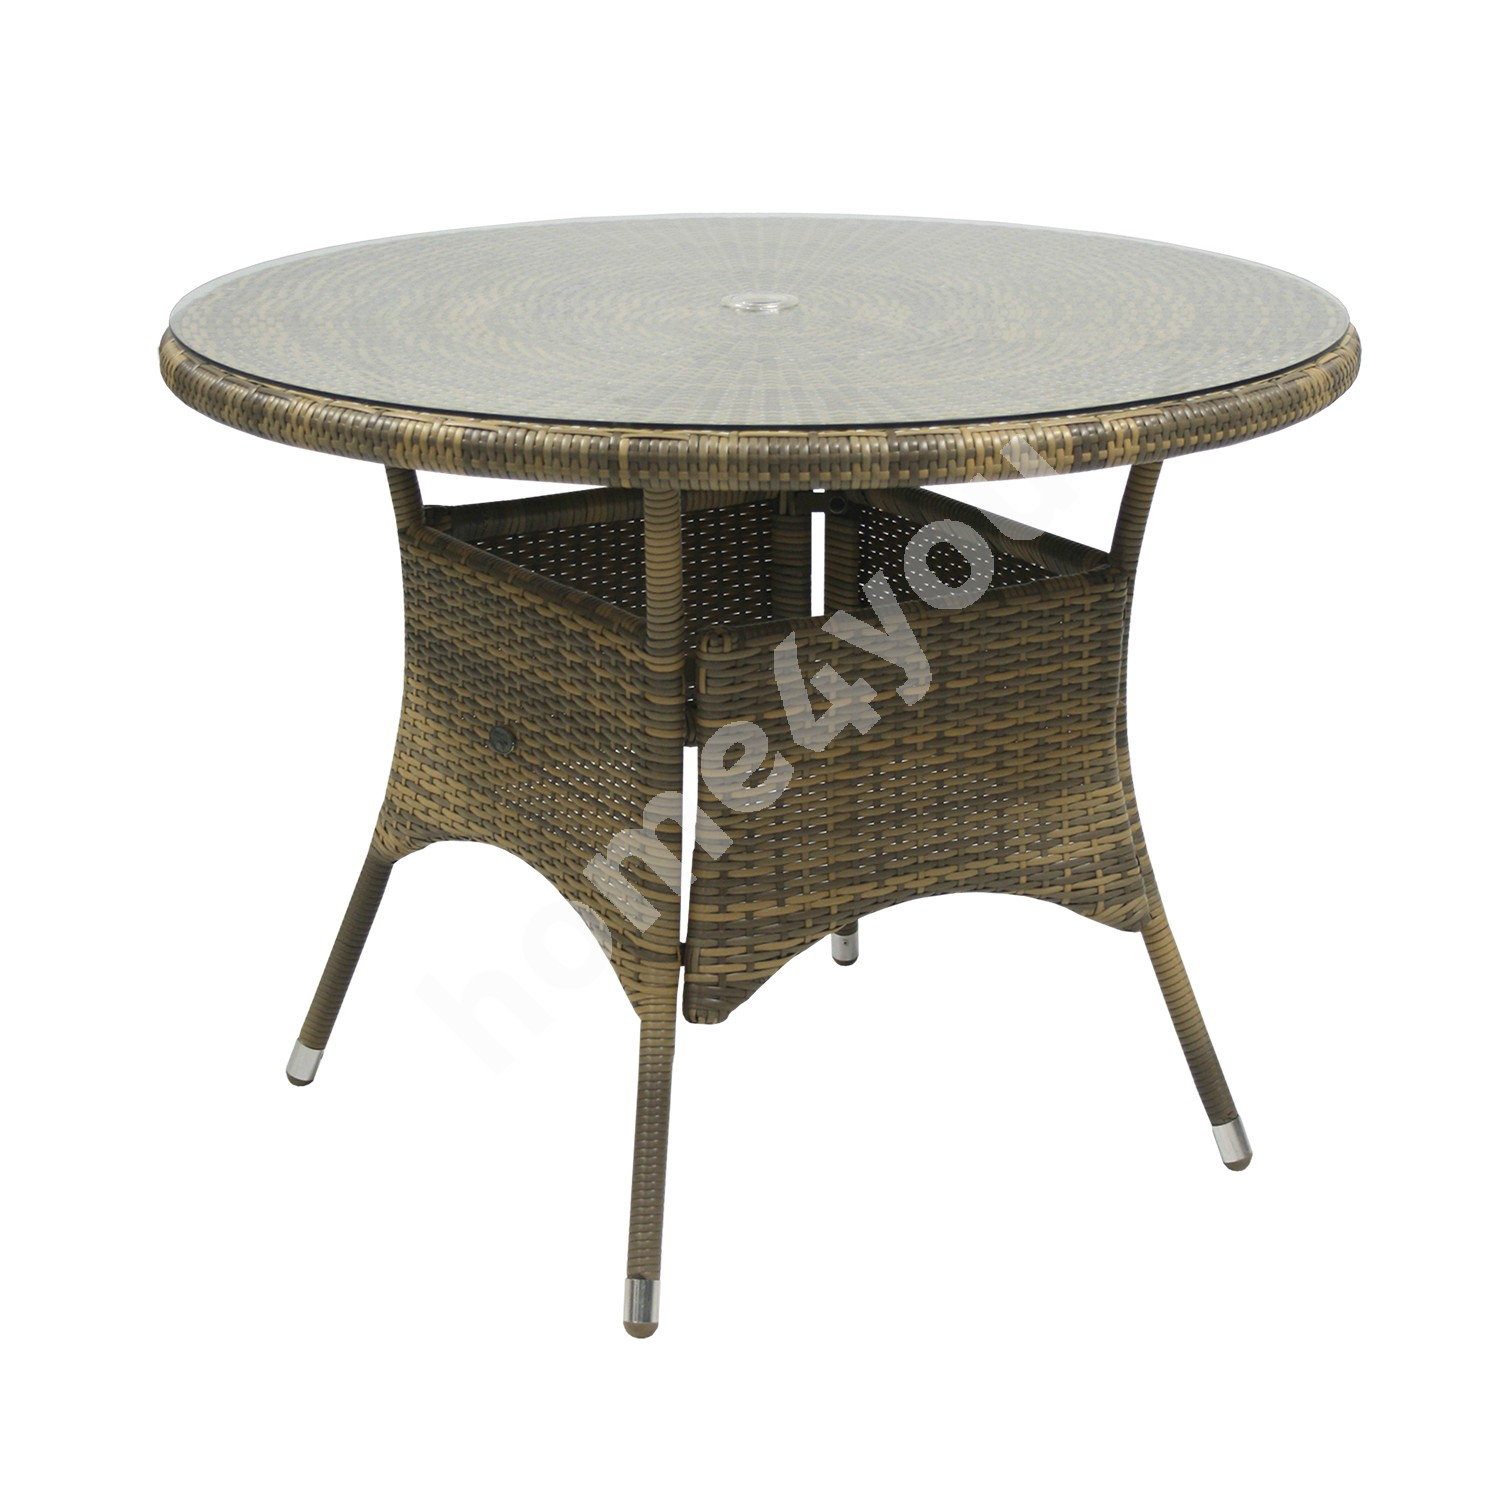 Table WICKER D100xH71cm, table top: clear glass, aluminum frame with plastic wicker, color: cappuccino